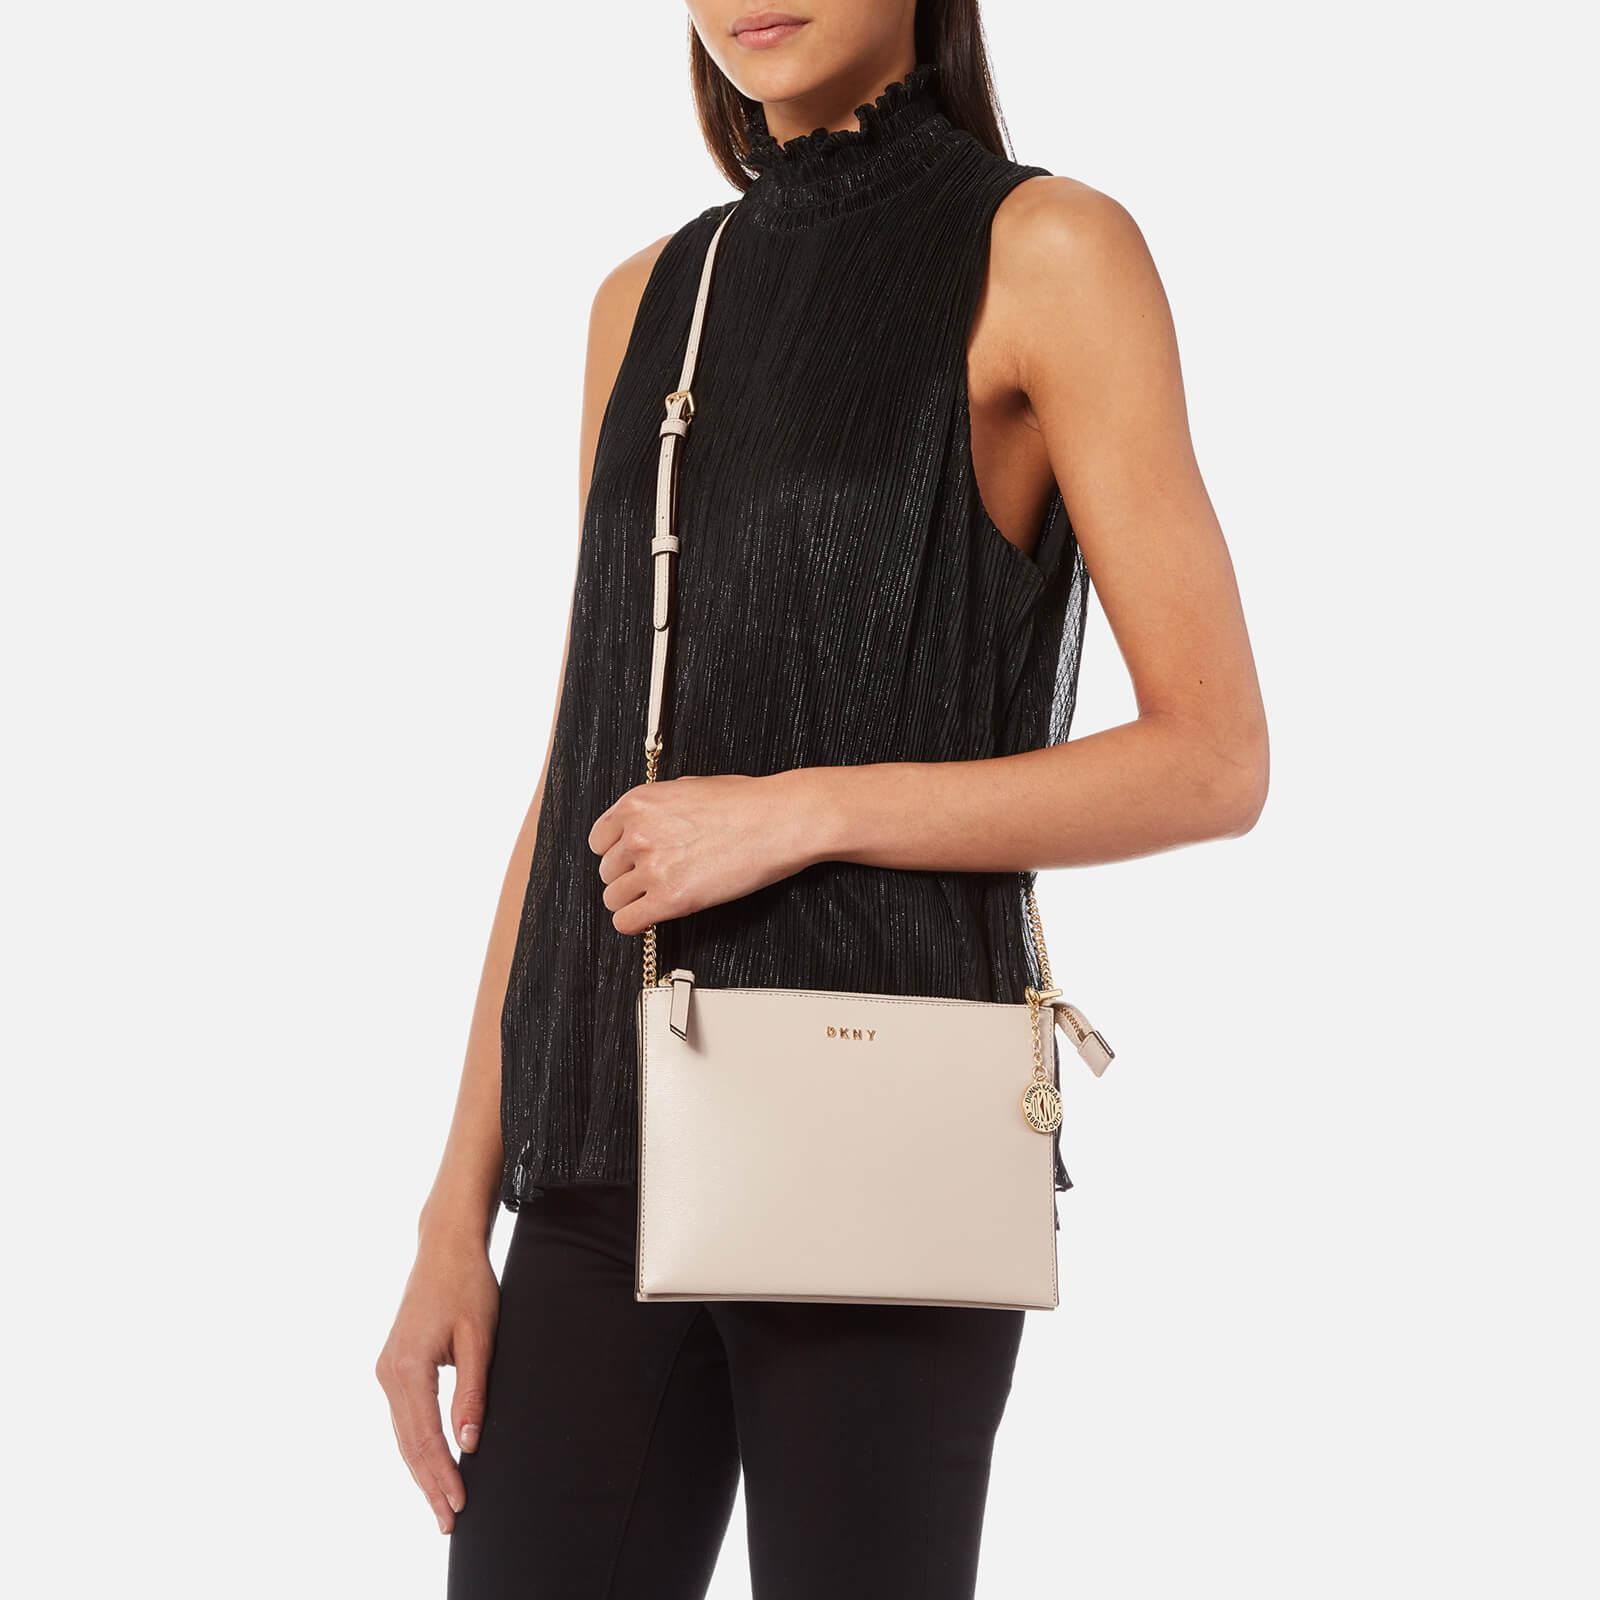 37abf80d88b Gallery. Previously sold at  The Hut · Women s Cross Body Bags